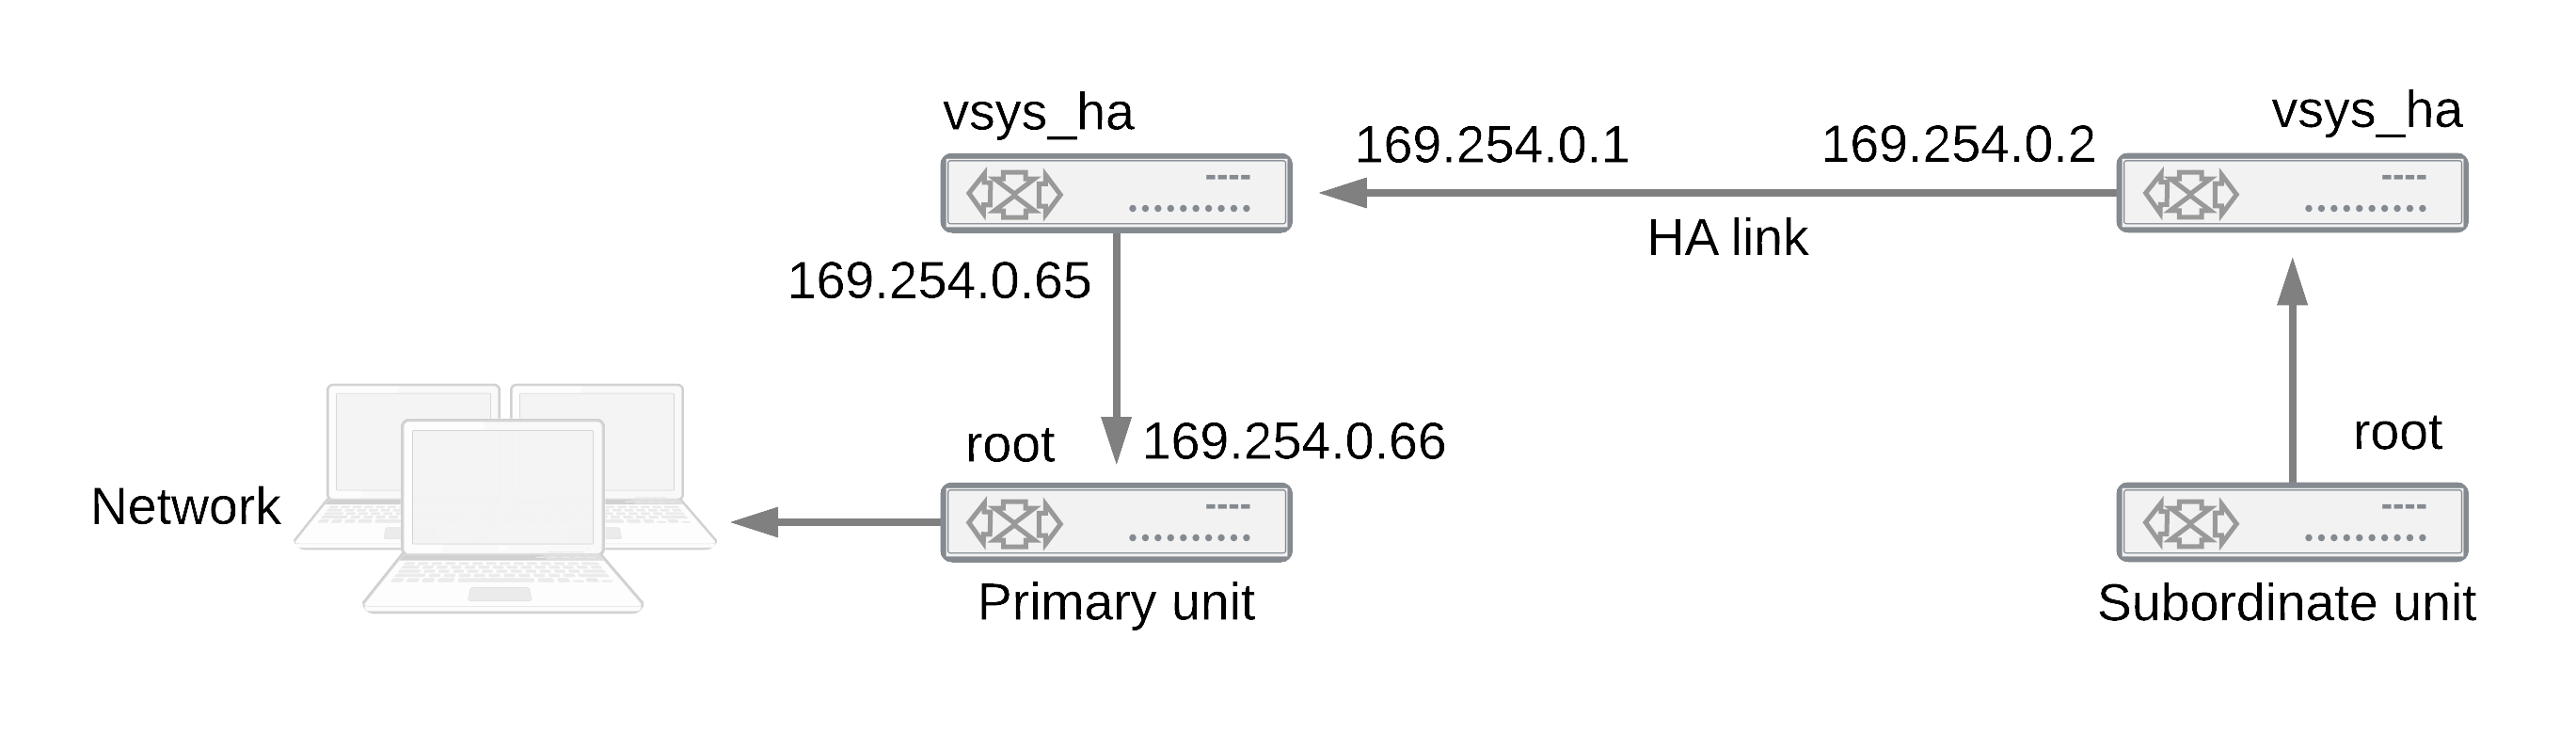 Operating a cluster